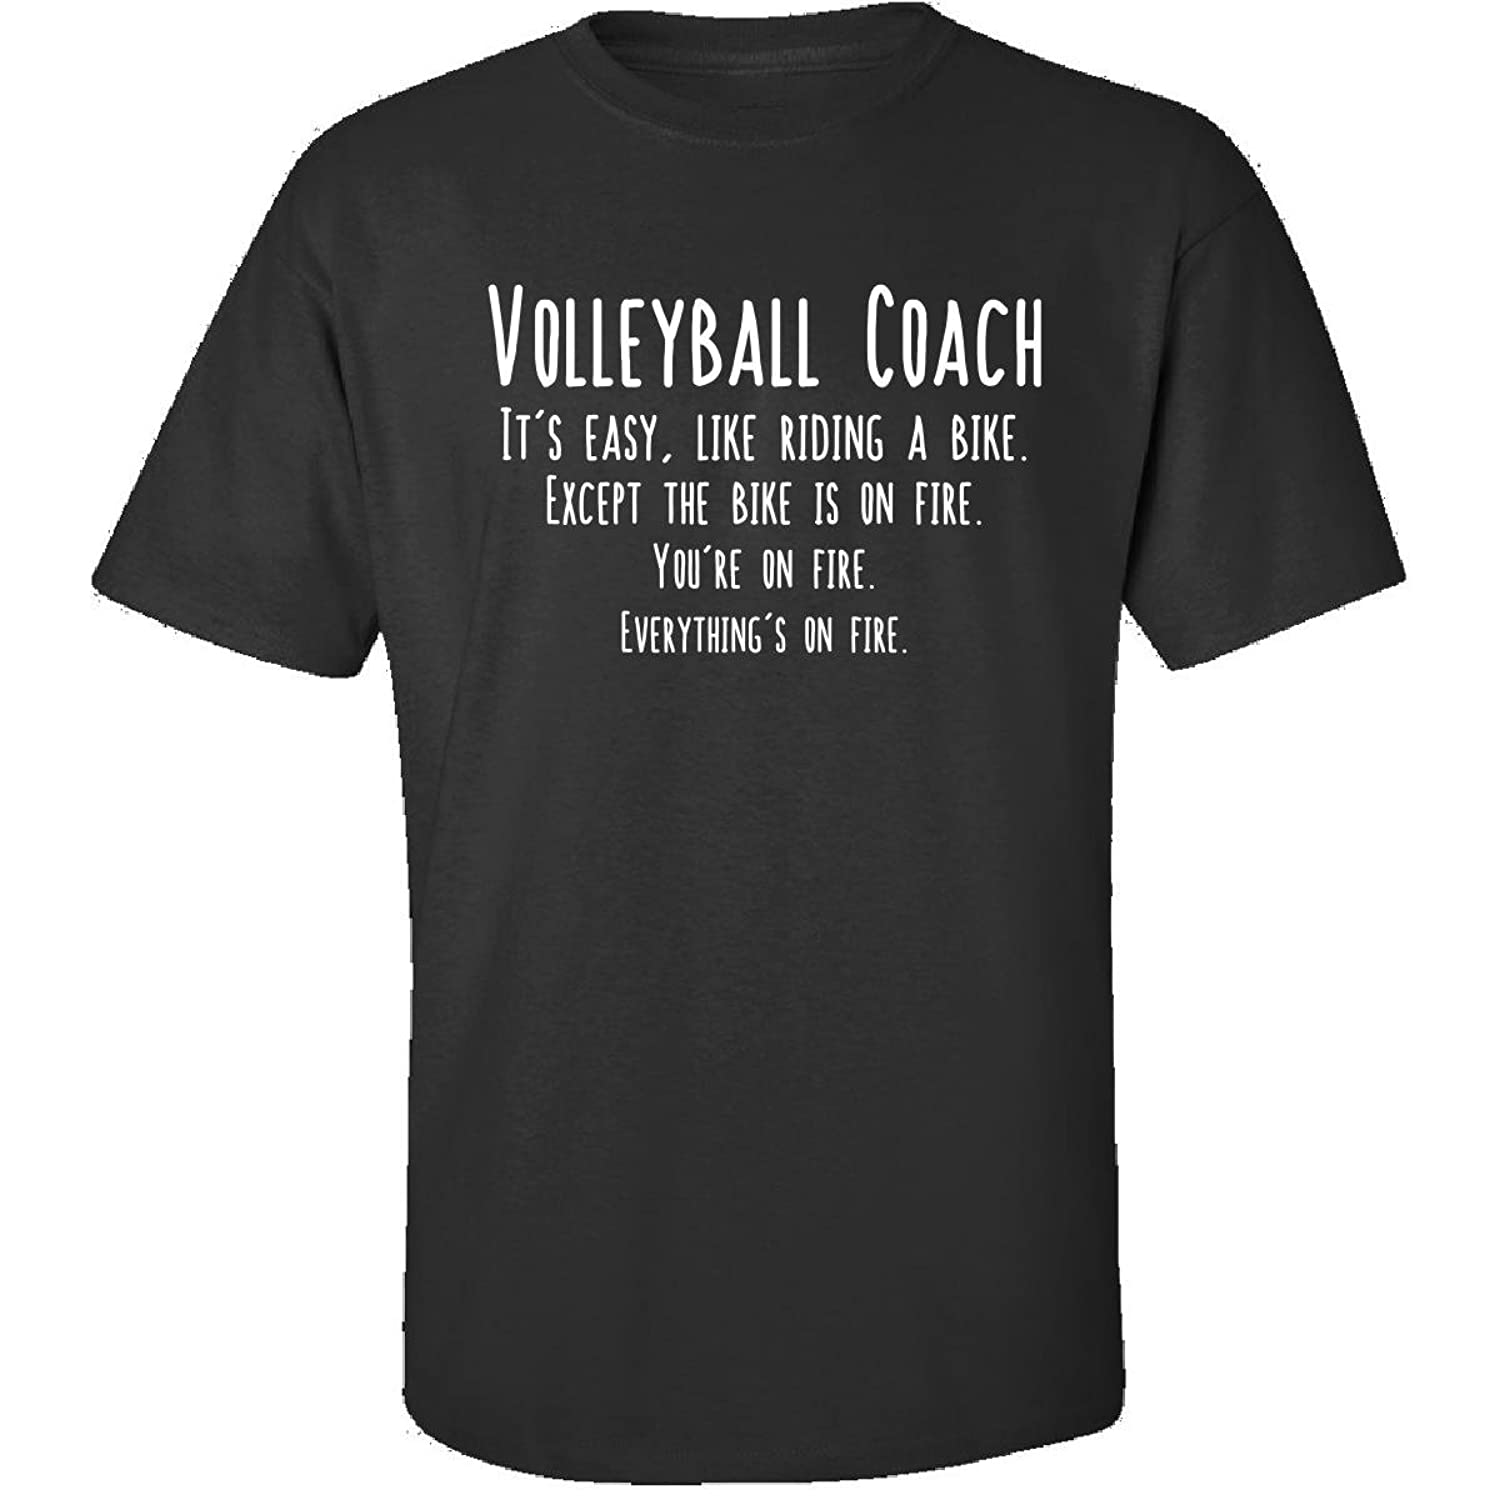 Volleyball Coach Is Easy Like Riding Bike On Fire Funny Job - Adult Shirt